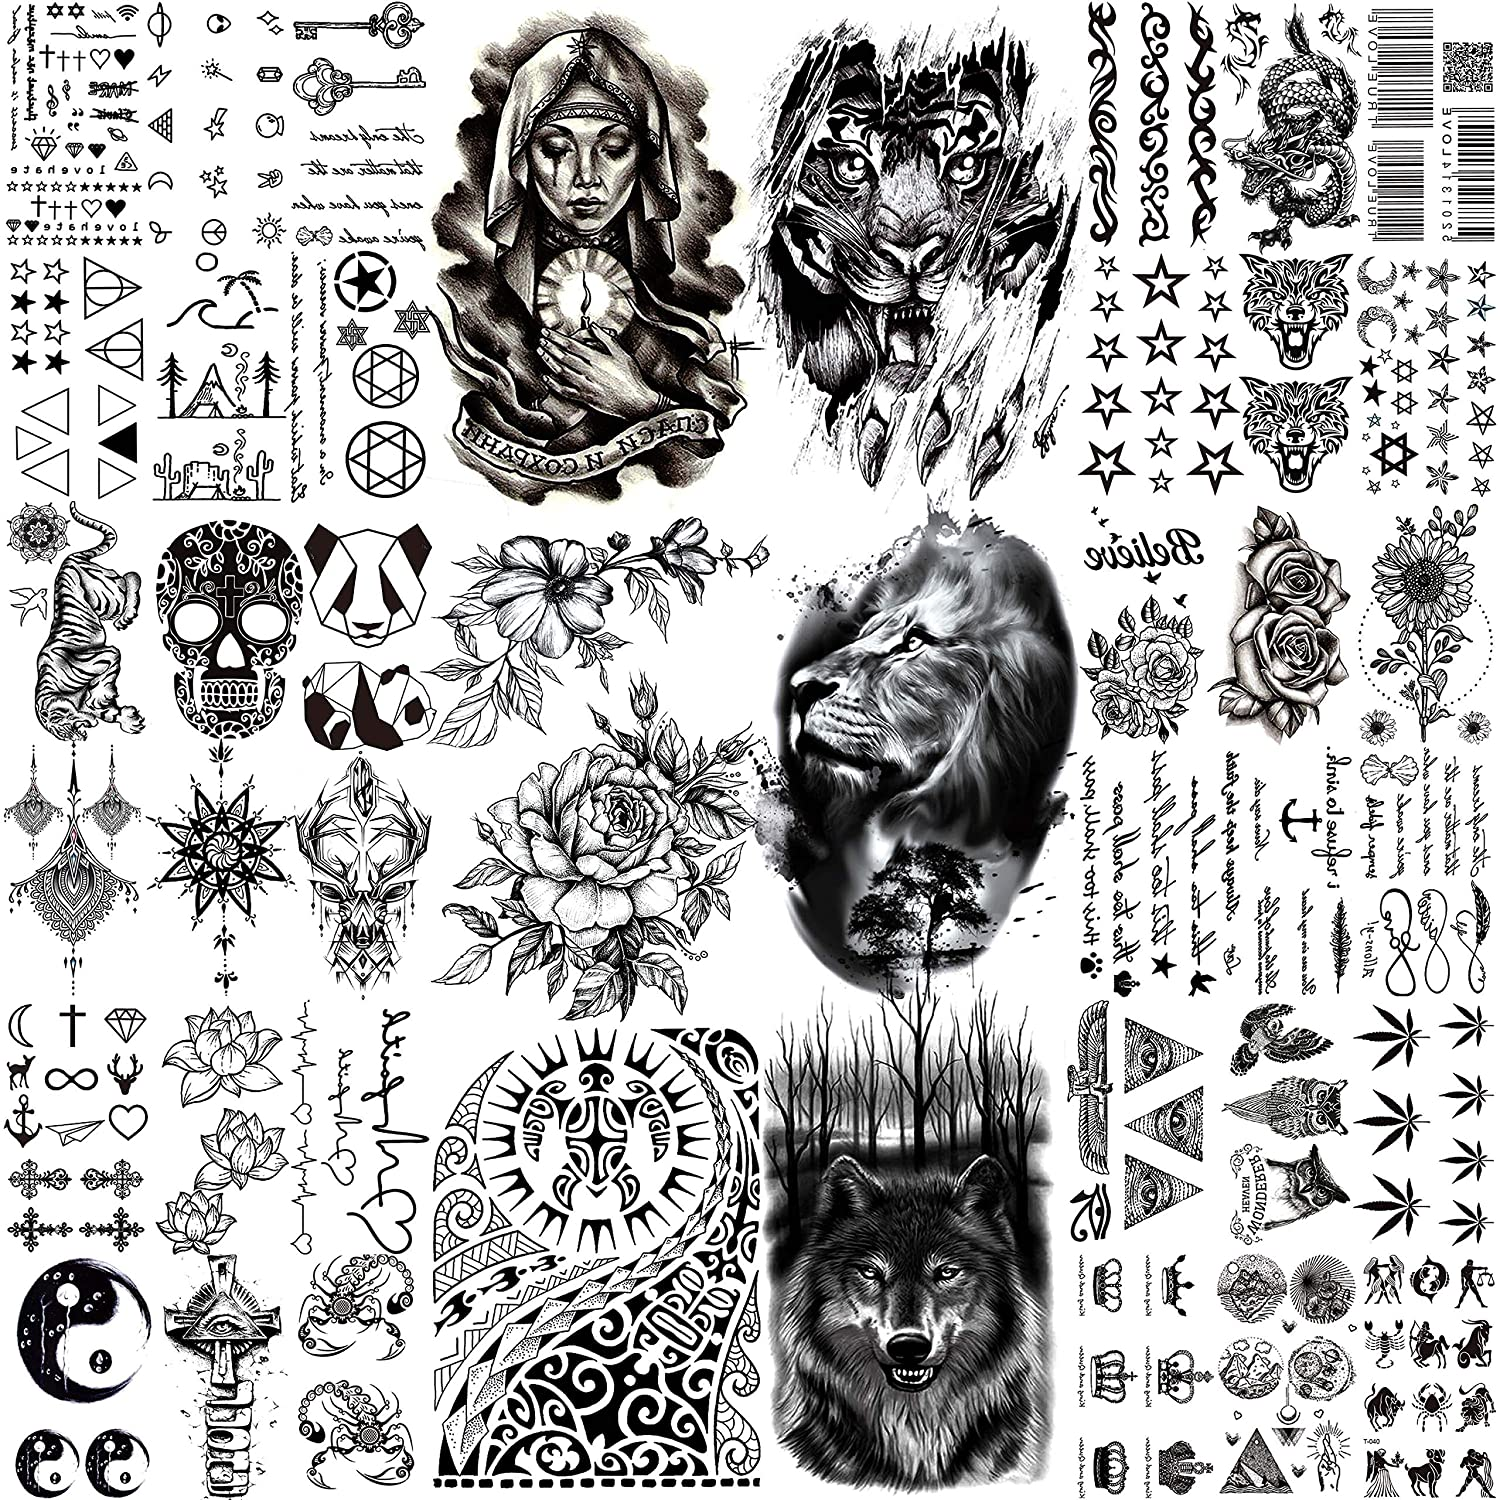 TASROI 42 Sheets Black Large Temporary Tattoos For Men Tribal Maori Tiger Lion Pray Nun Women Arm Flower Tattoo Temporary Fake Stars Words Letters Tattoos For Adults Kids Face Chest Neck Tatoo Sticker